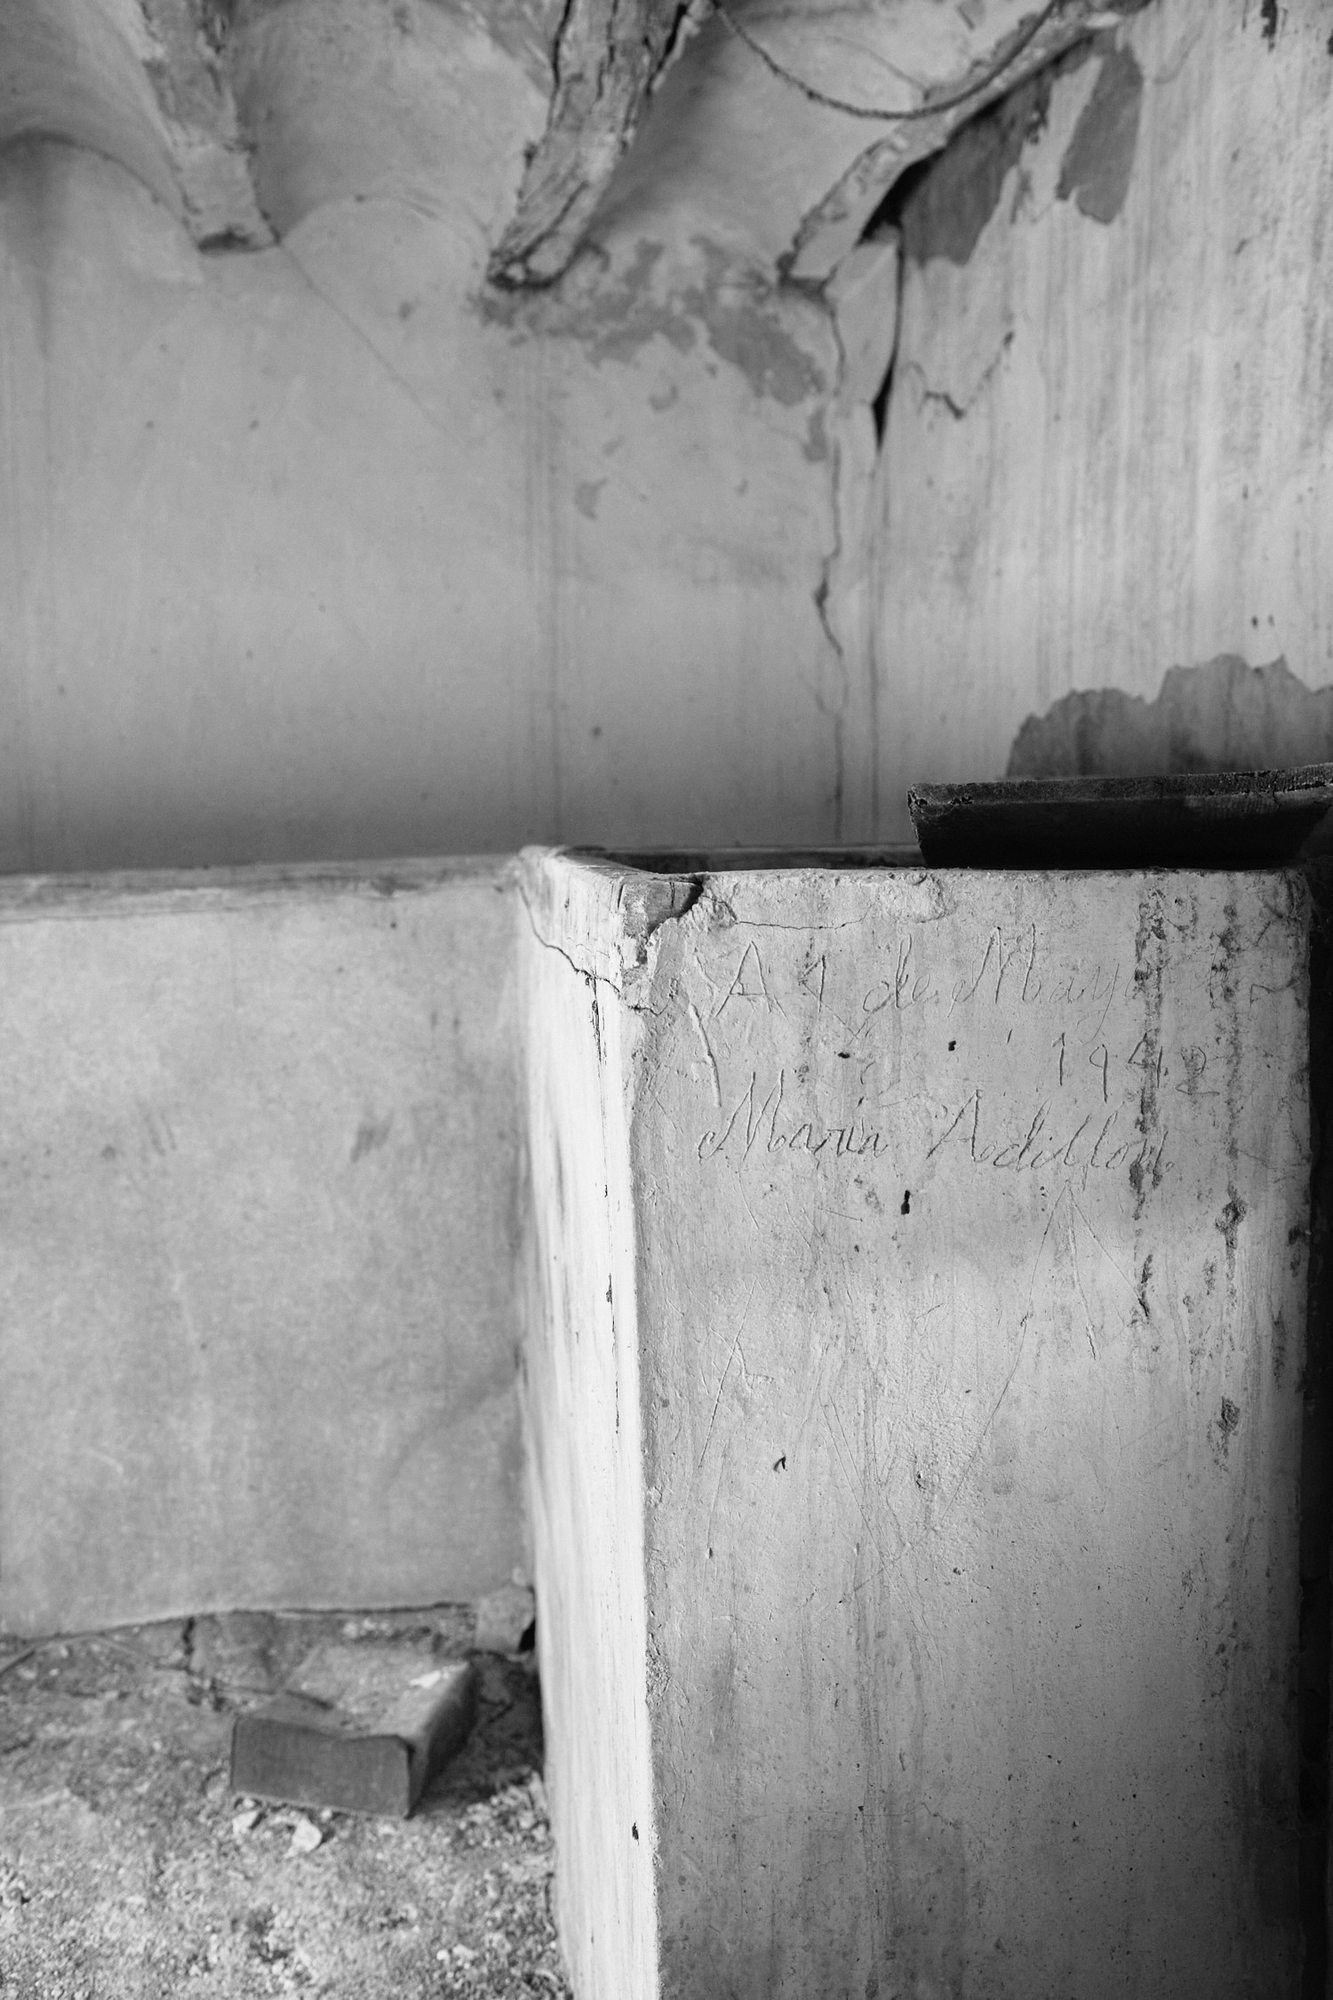 A old room in ruins with a scratch writing in a wall. Black and white photography. Nostalgic.